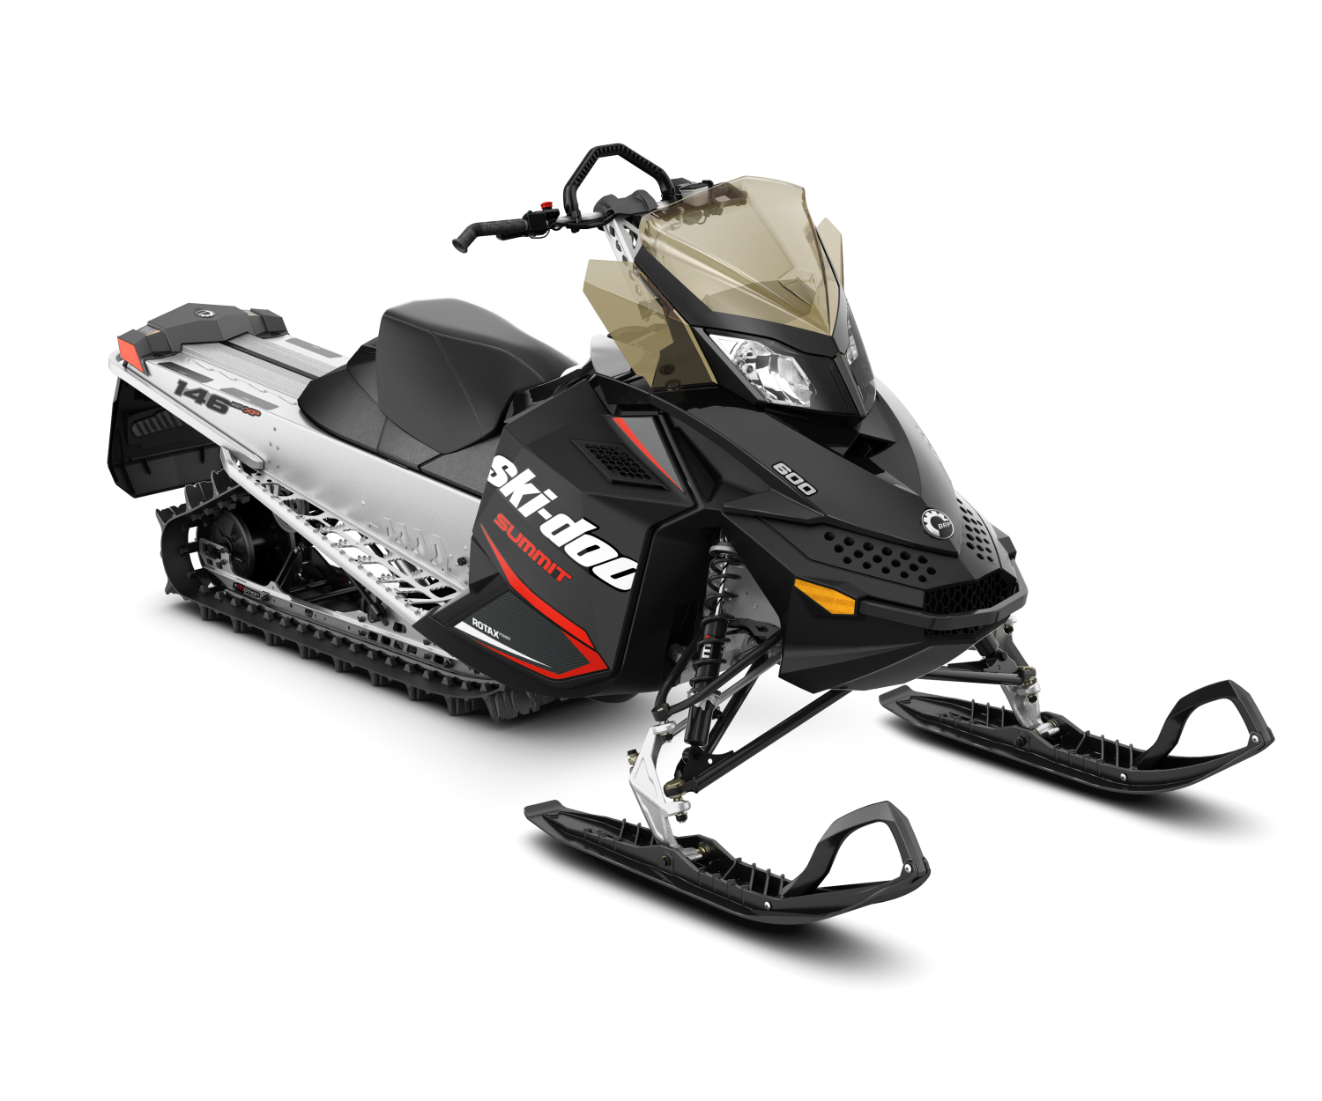 2018 Ski-Doo Summit Sport 600 Carb in Brookfield, Wisconsin